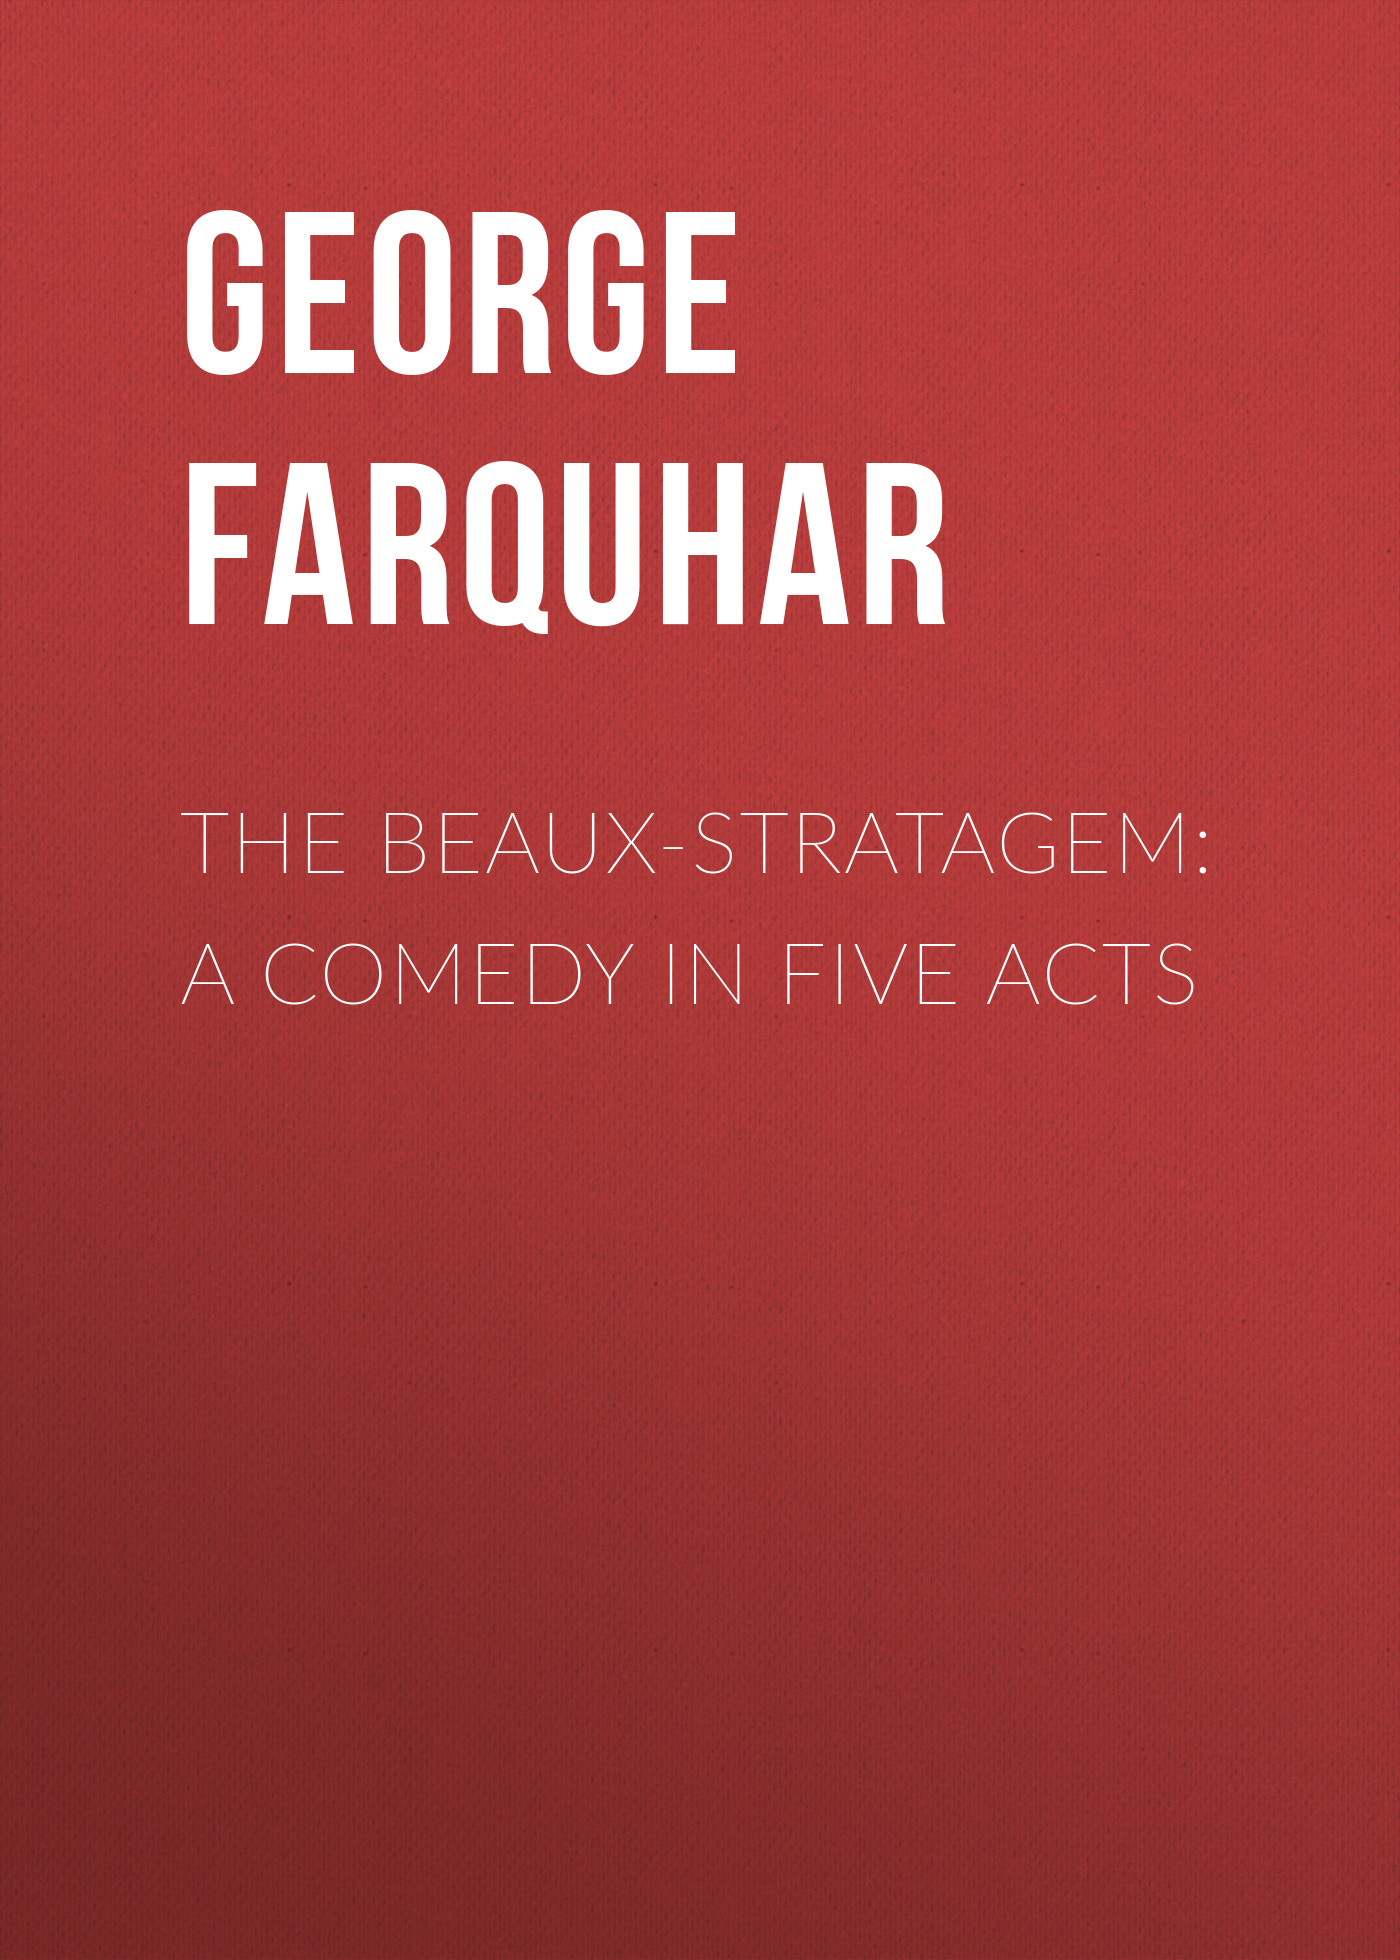 George Farquhar The Beaux-Stratagem: A comedy in five acts george farquhar the beaux stratagem